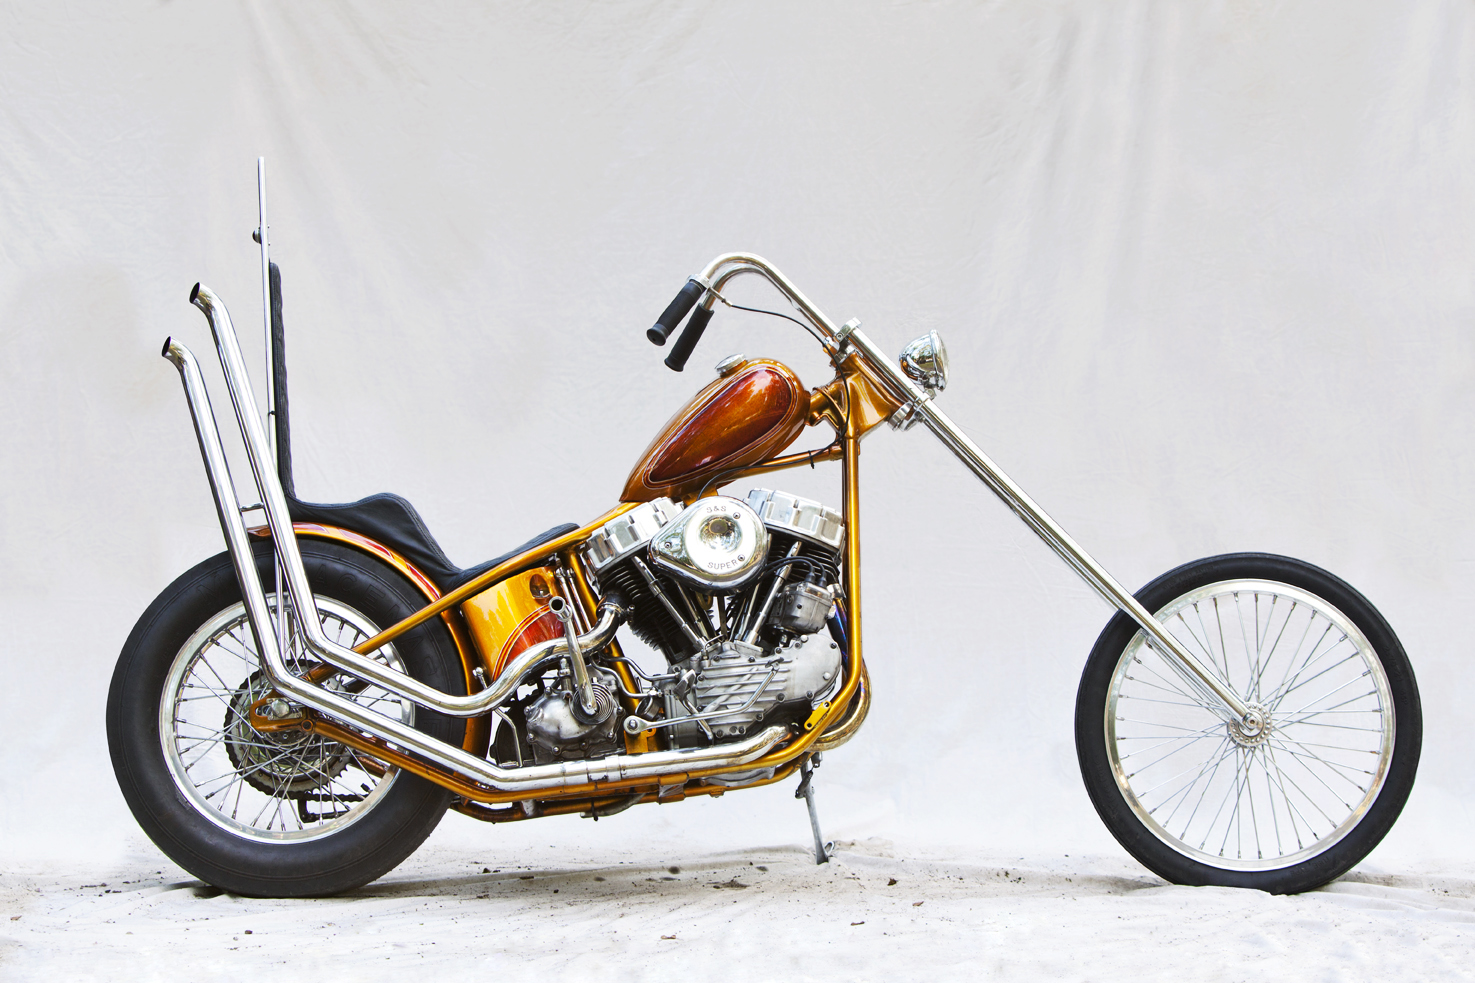 rycamotors together with Martin Ringo Chop Shop Panhead together with Basic Motorcycle Wiring Diagram additionally Overview besides Kawasaki Vulcan 800 Bobber Kits. on triumph chopper battery